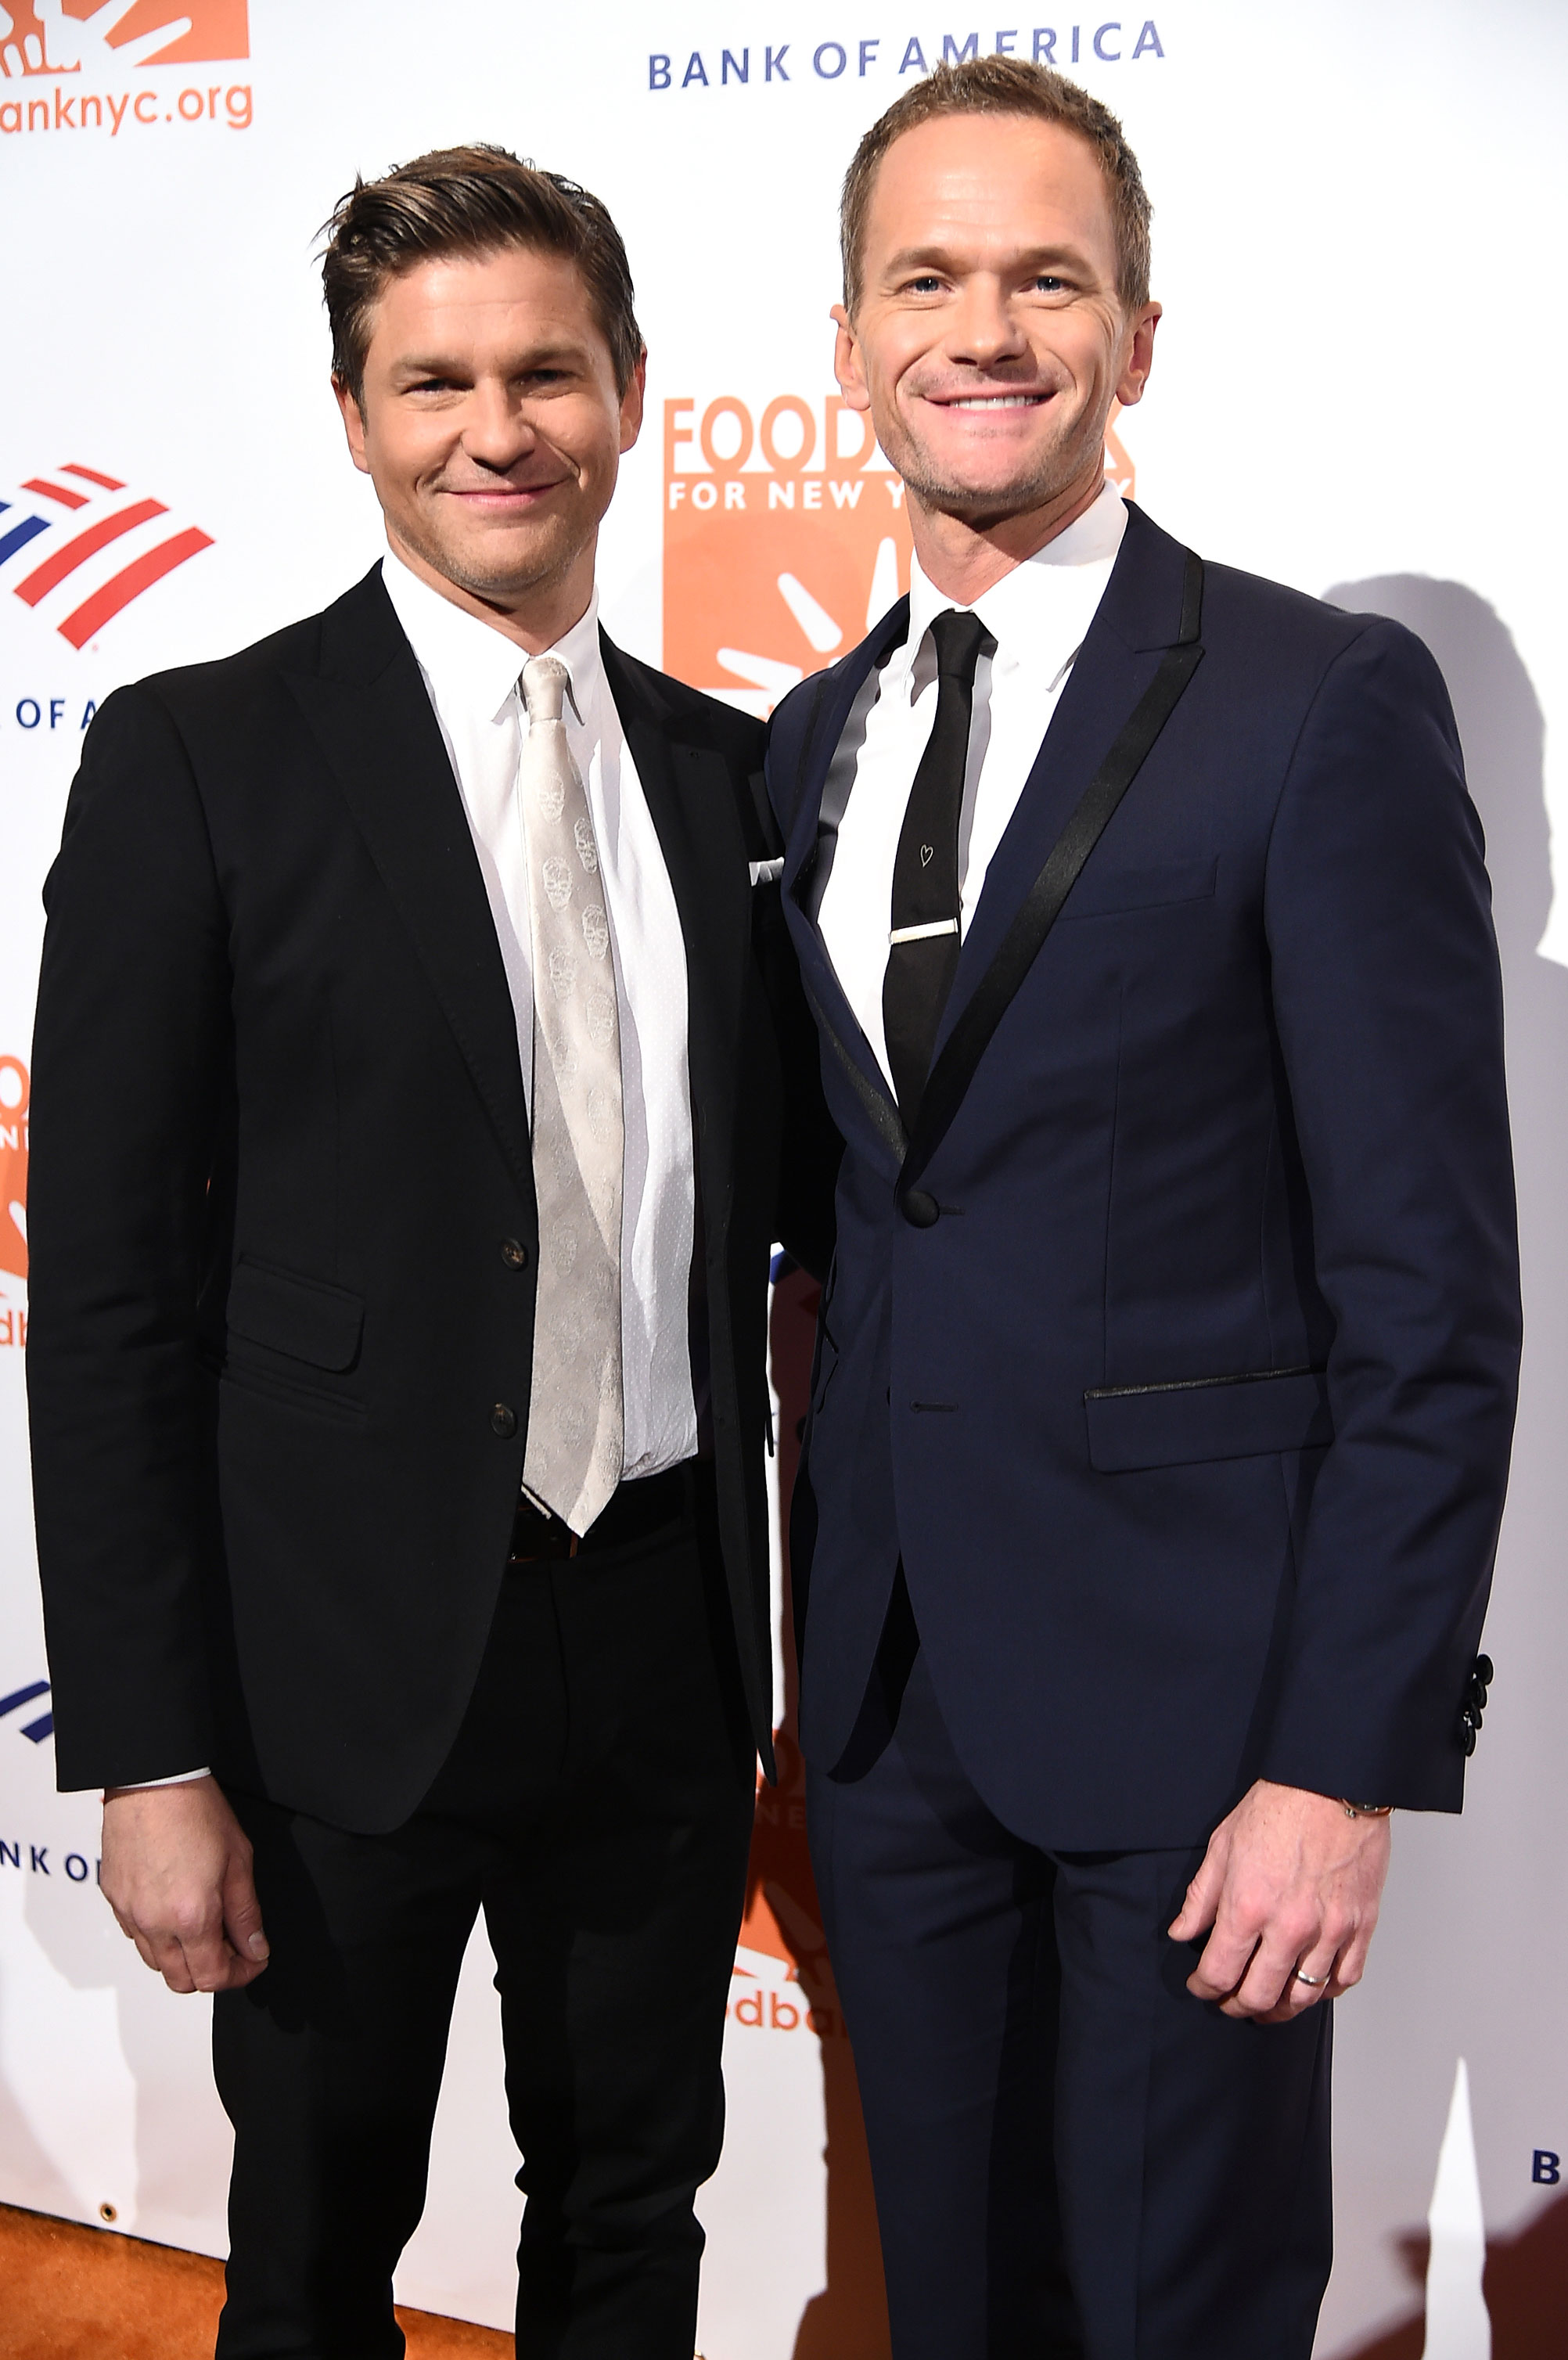 Neil Patrick Harris David Burtka Rough Patches - David Burtka and Neil Patrick Harris attend the Food Bank For New York City Can-Do Awards at Cipriani Wall Street on April 16, 2019 in New York City.